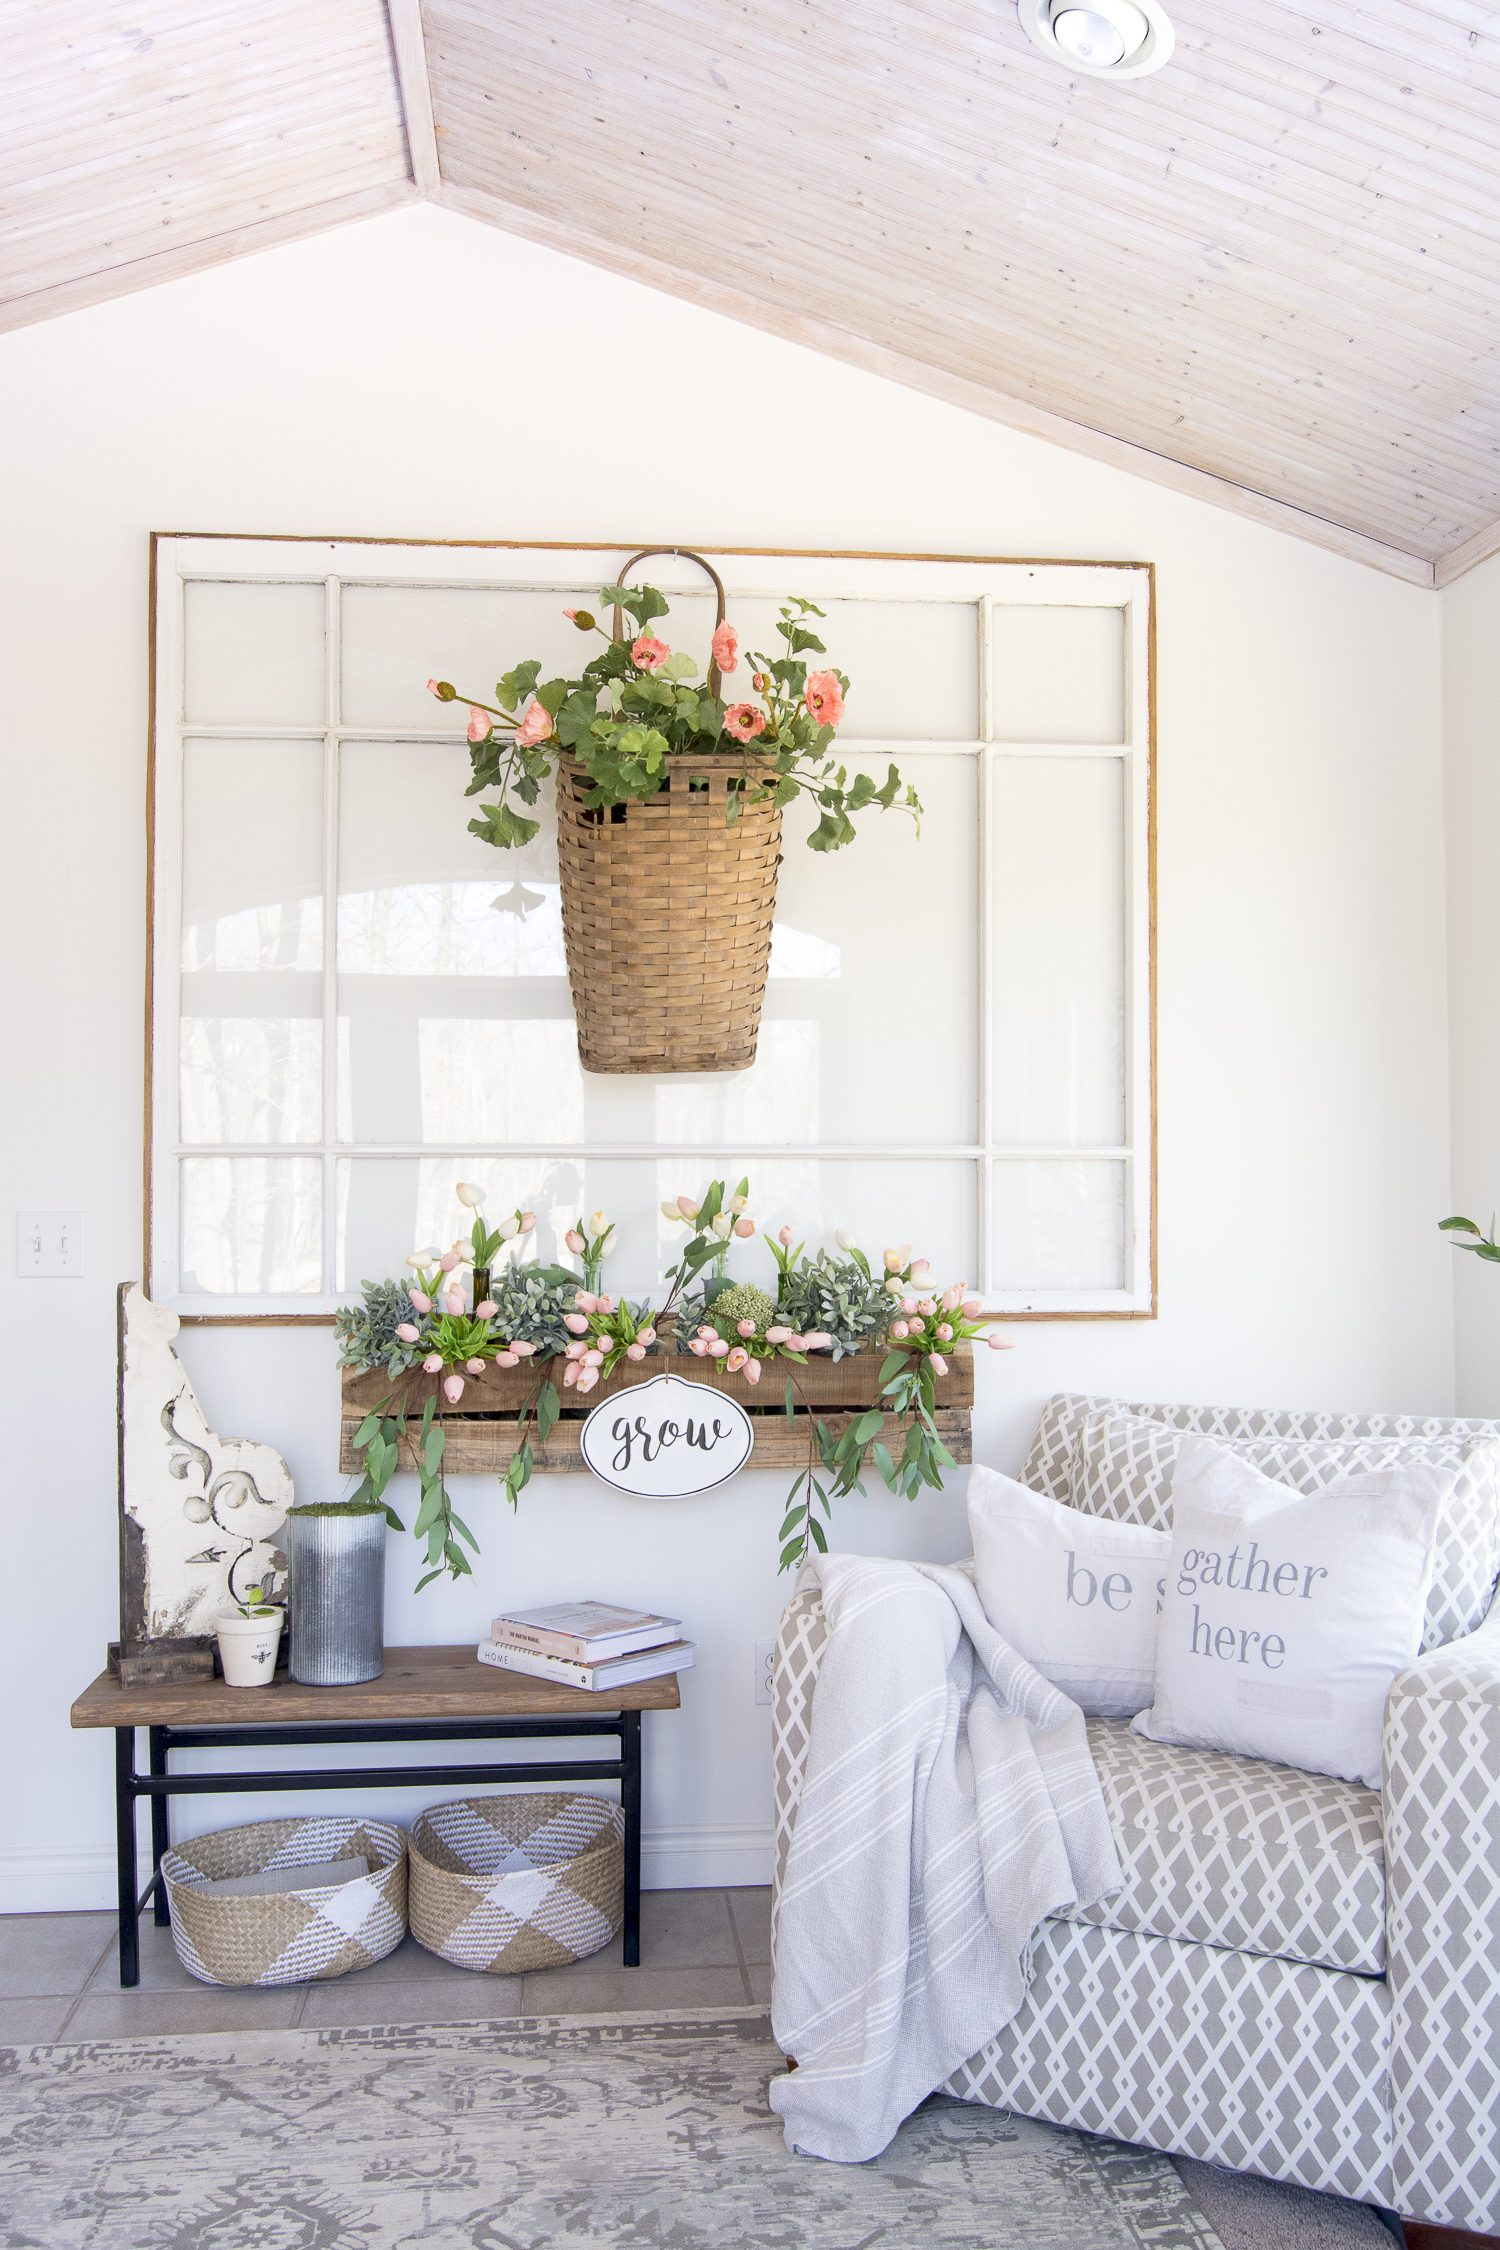 Looking for a vintage home decor ideas? Here is my full home style guide with my best modern farmhouse decor sources. #fromhousetohaven #farmhouseinteriordesign #modernfarmhousestyle